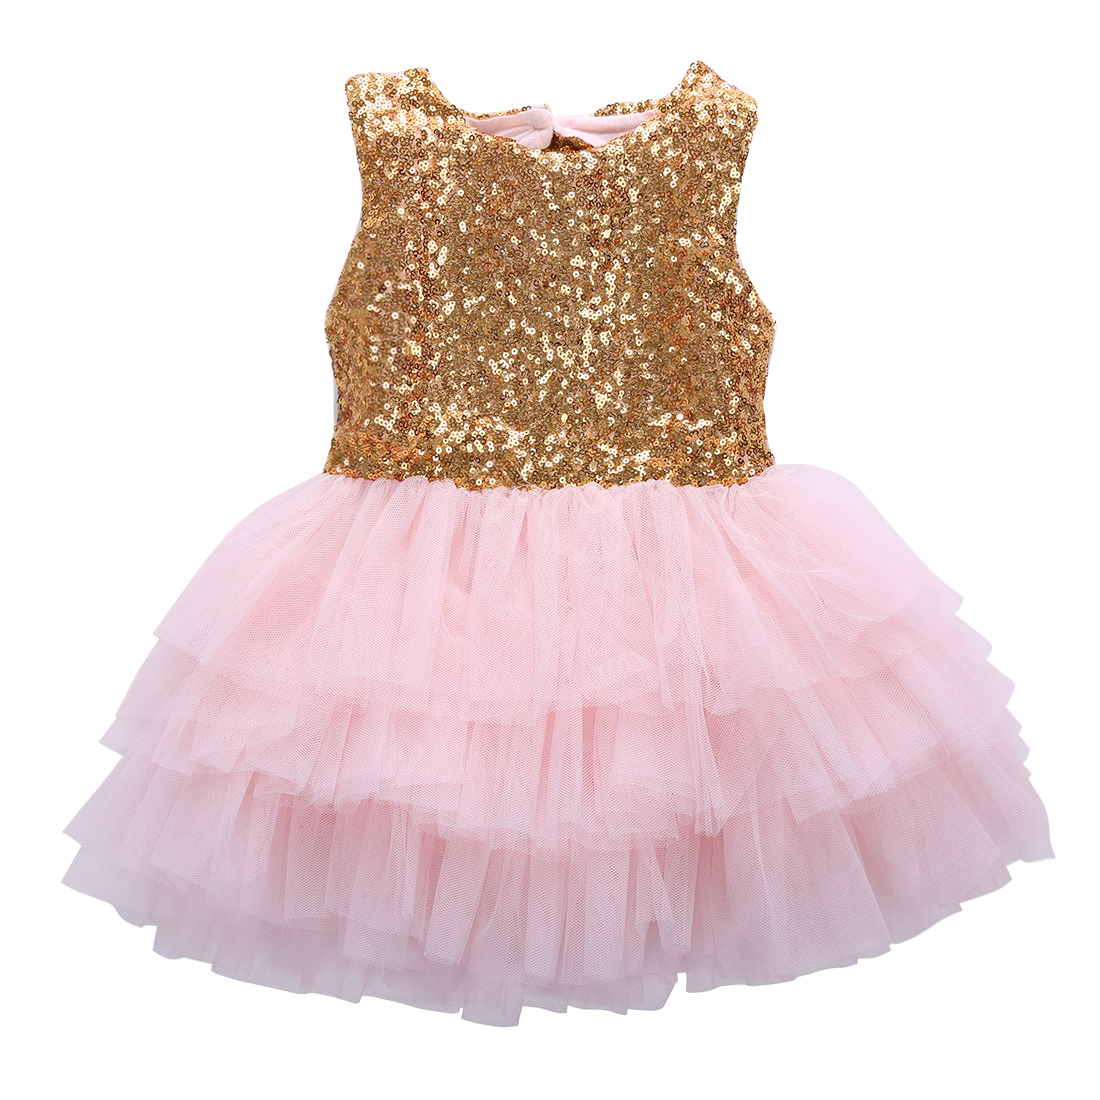 43561b1fb89c Toddler r Baby Girl Sequin Princess Dress Bow Ball Gown Fancy Party Dress  For Kids Girl Fashion Children Girl Mesh Tutu Dresses. 1 order